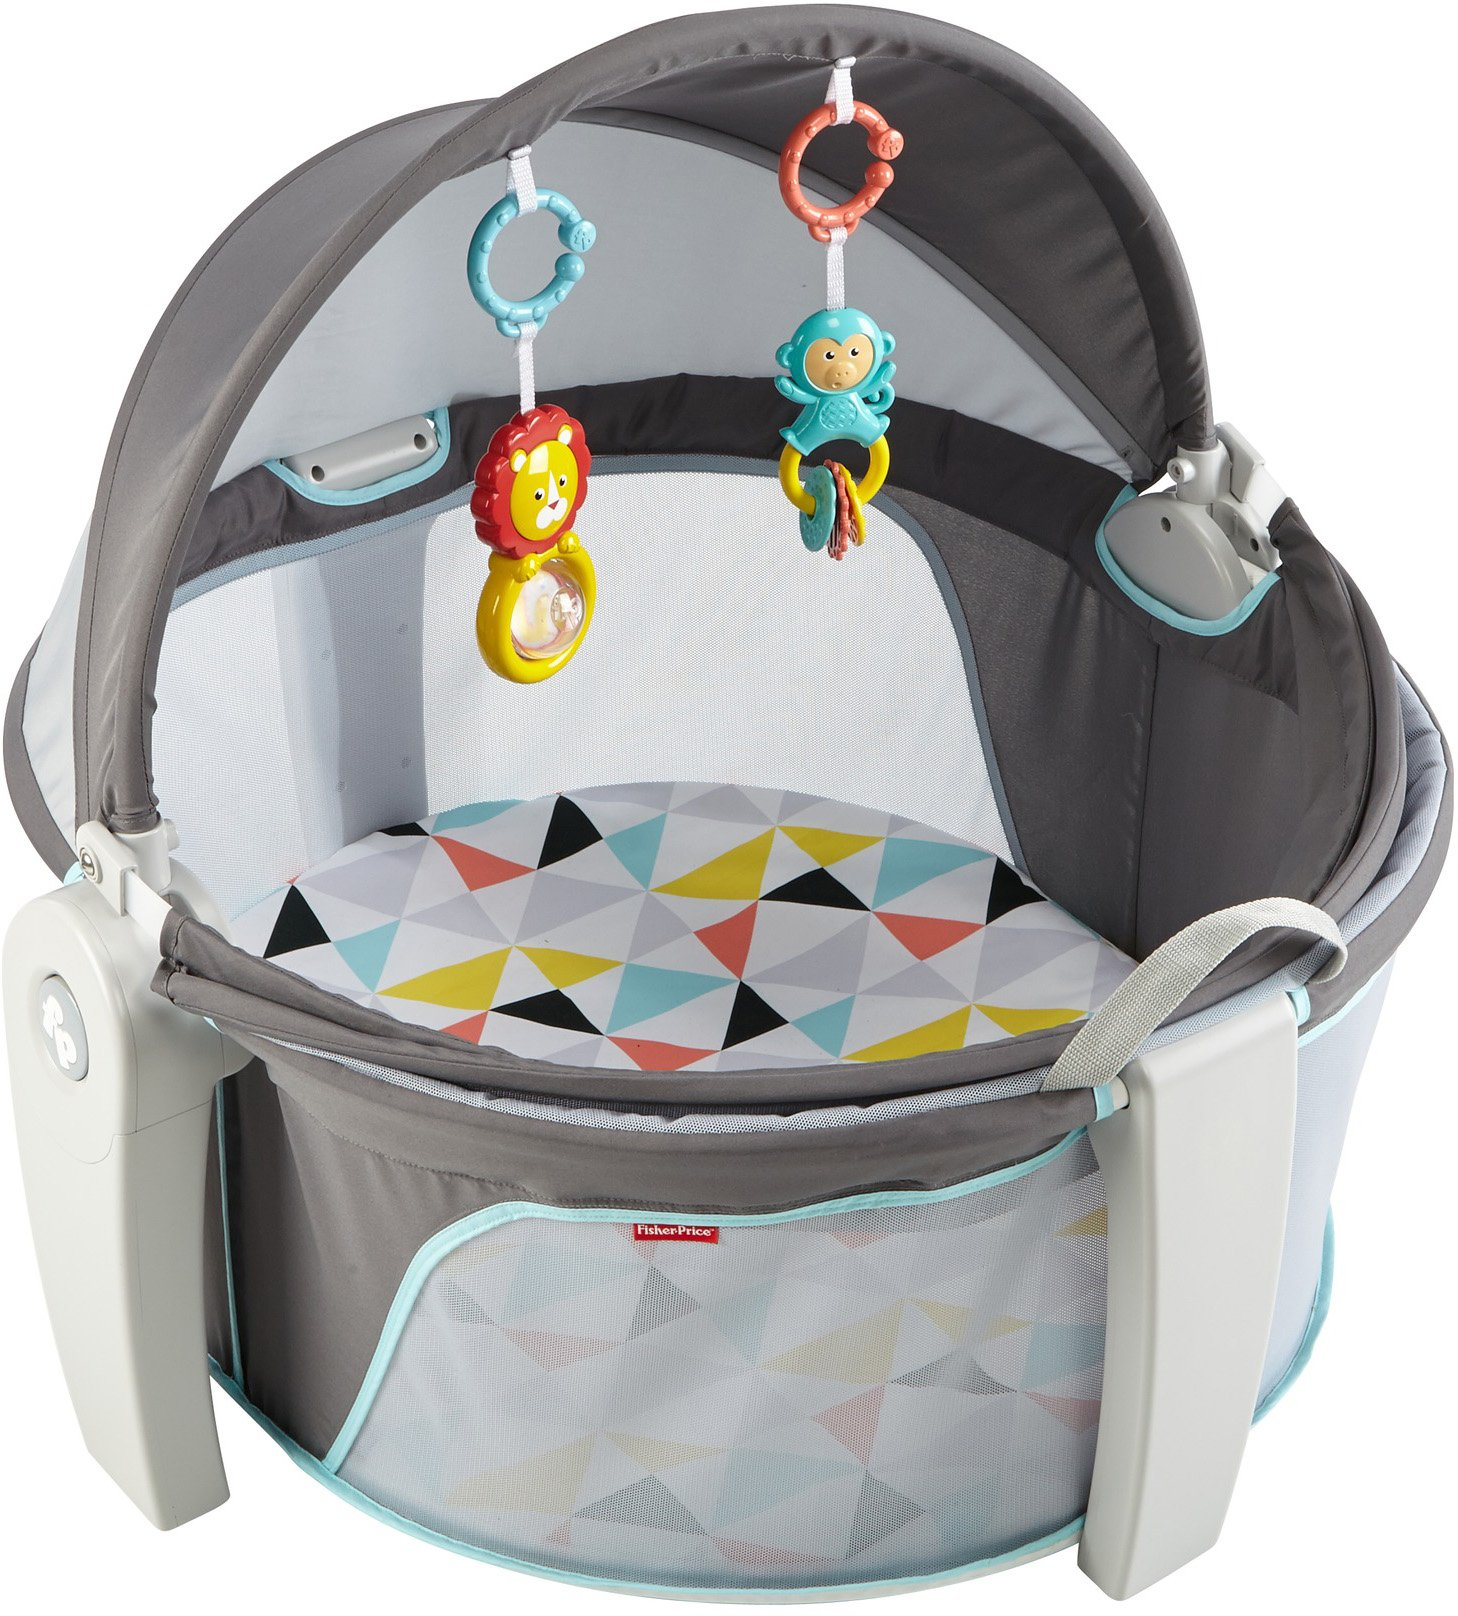 Fisher-Price Baby Dome Portable Play Tent UV Shield Canopy Toddler+Removable Toy  sc 1 st  eBay & Fisher-Price Baby Dome Portable Play Tent UV Shield Canopy Toddler ...